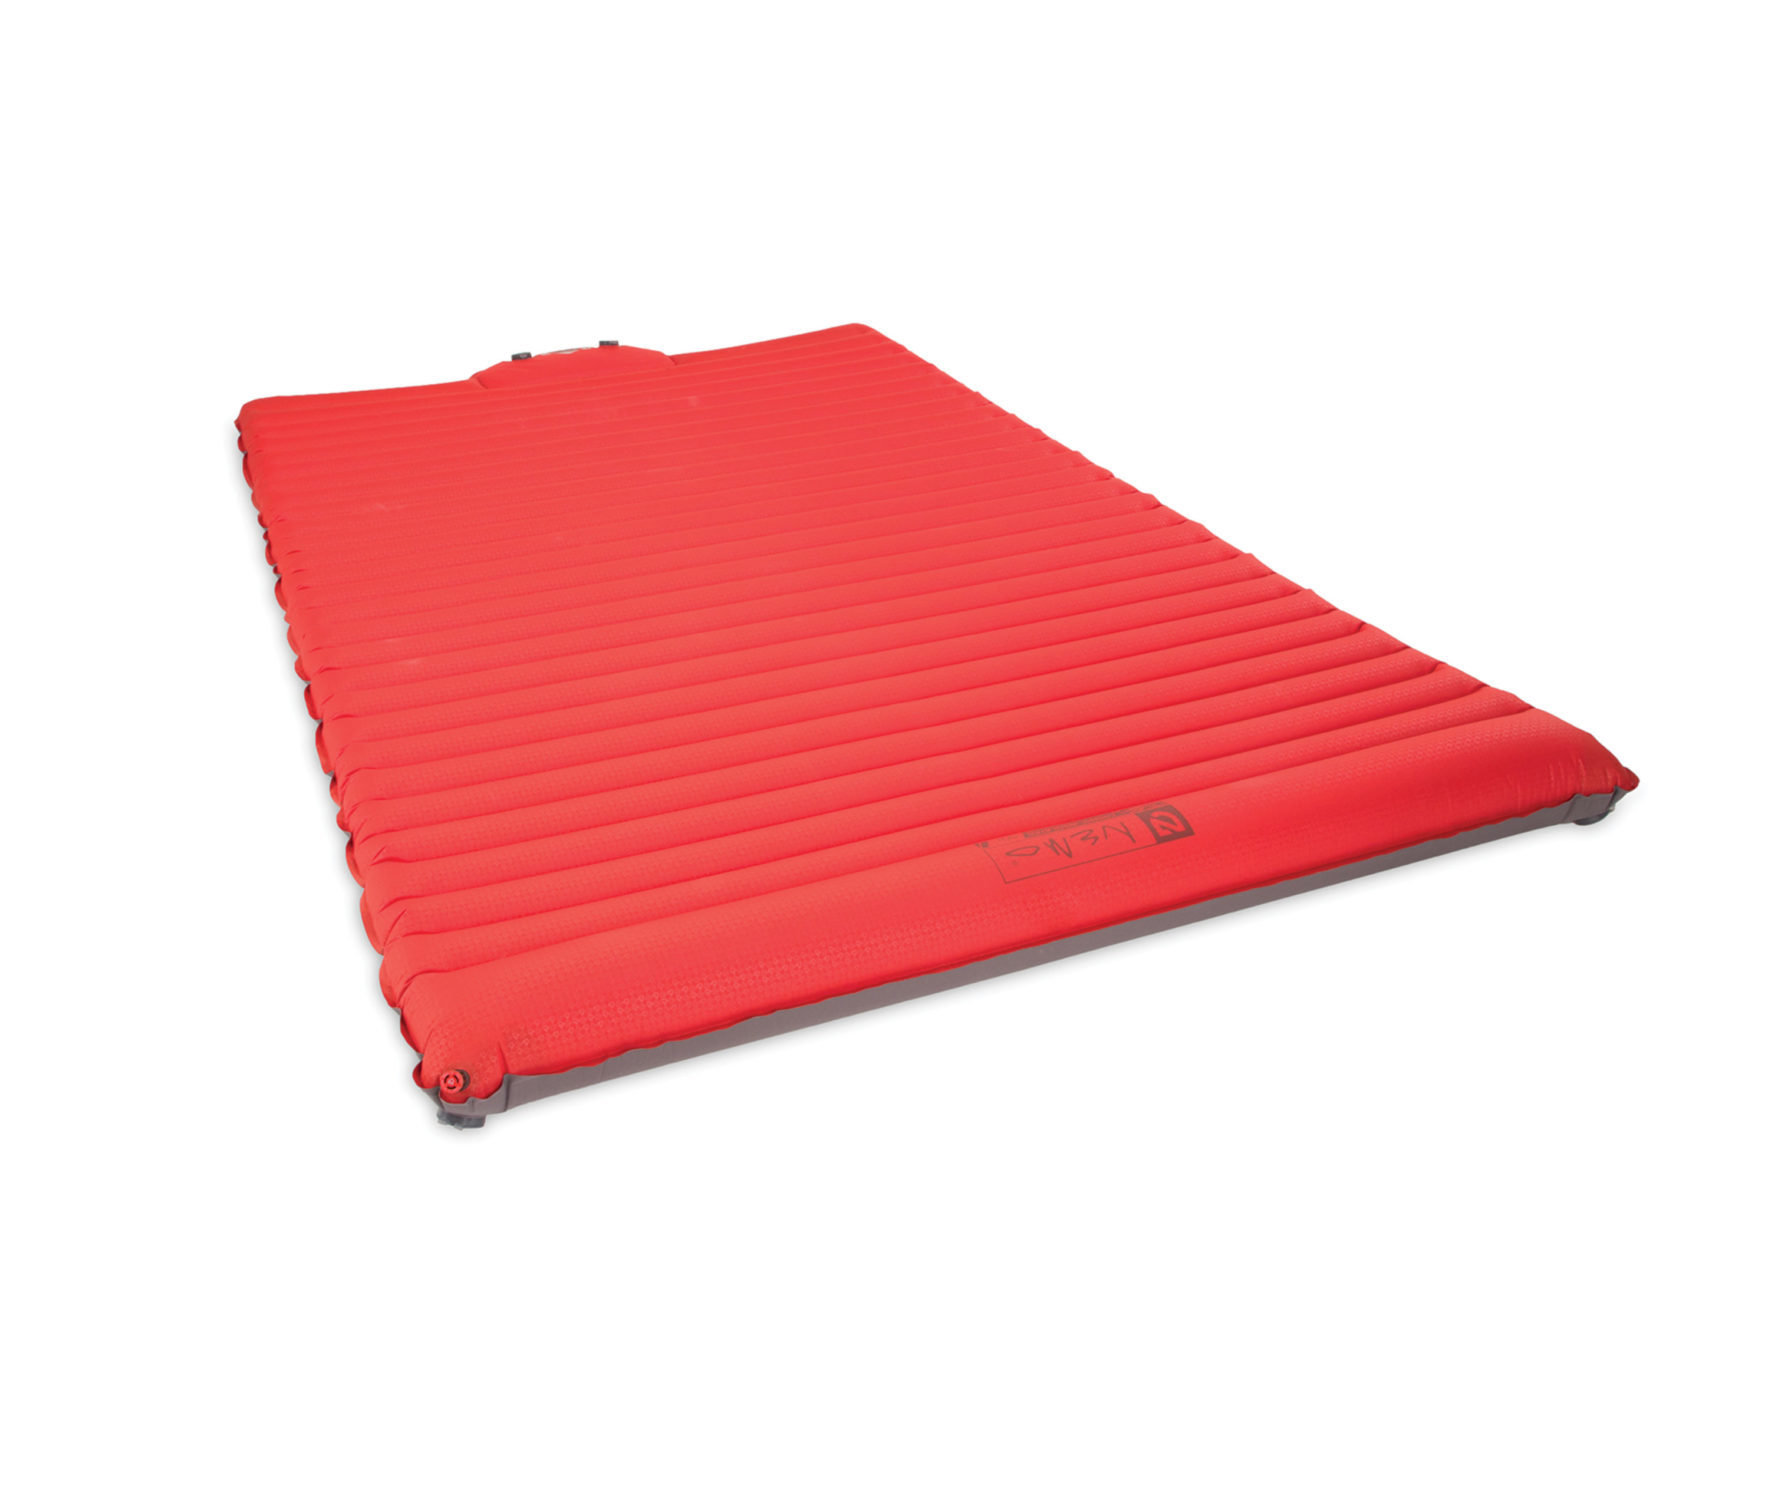 NEMO Cosmo Sleeping Pad & Pump